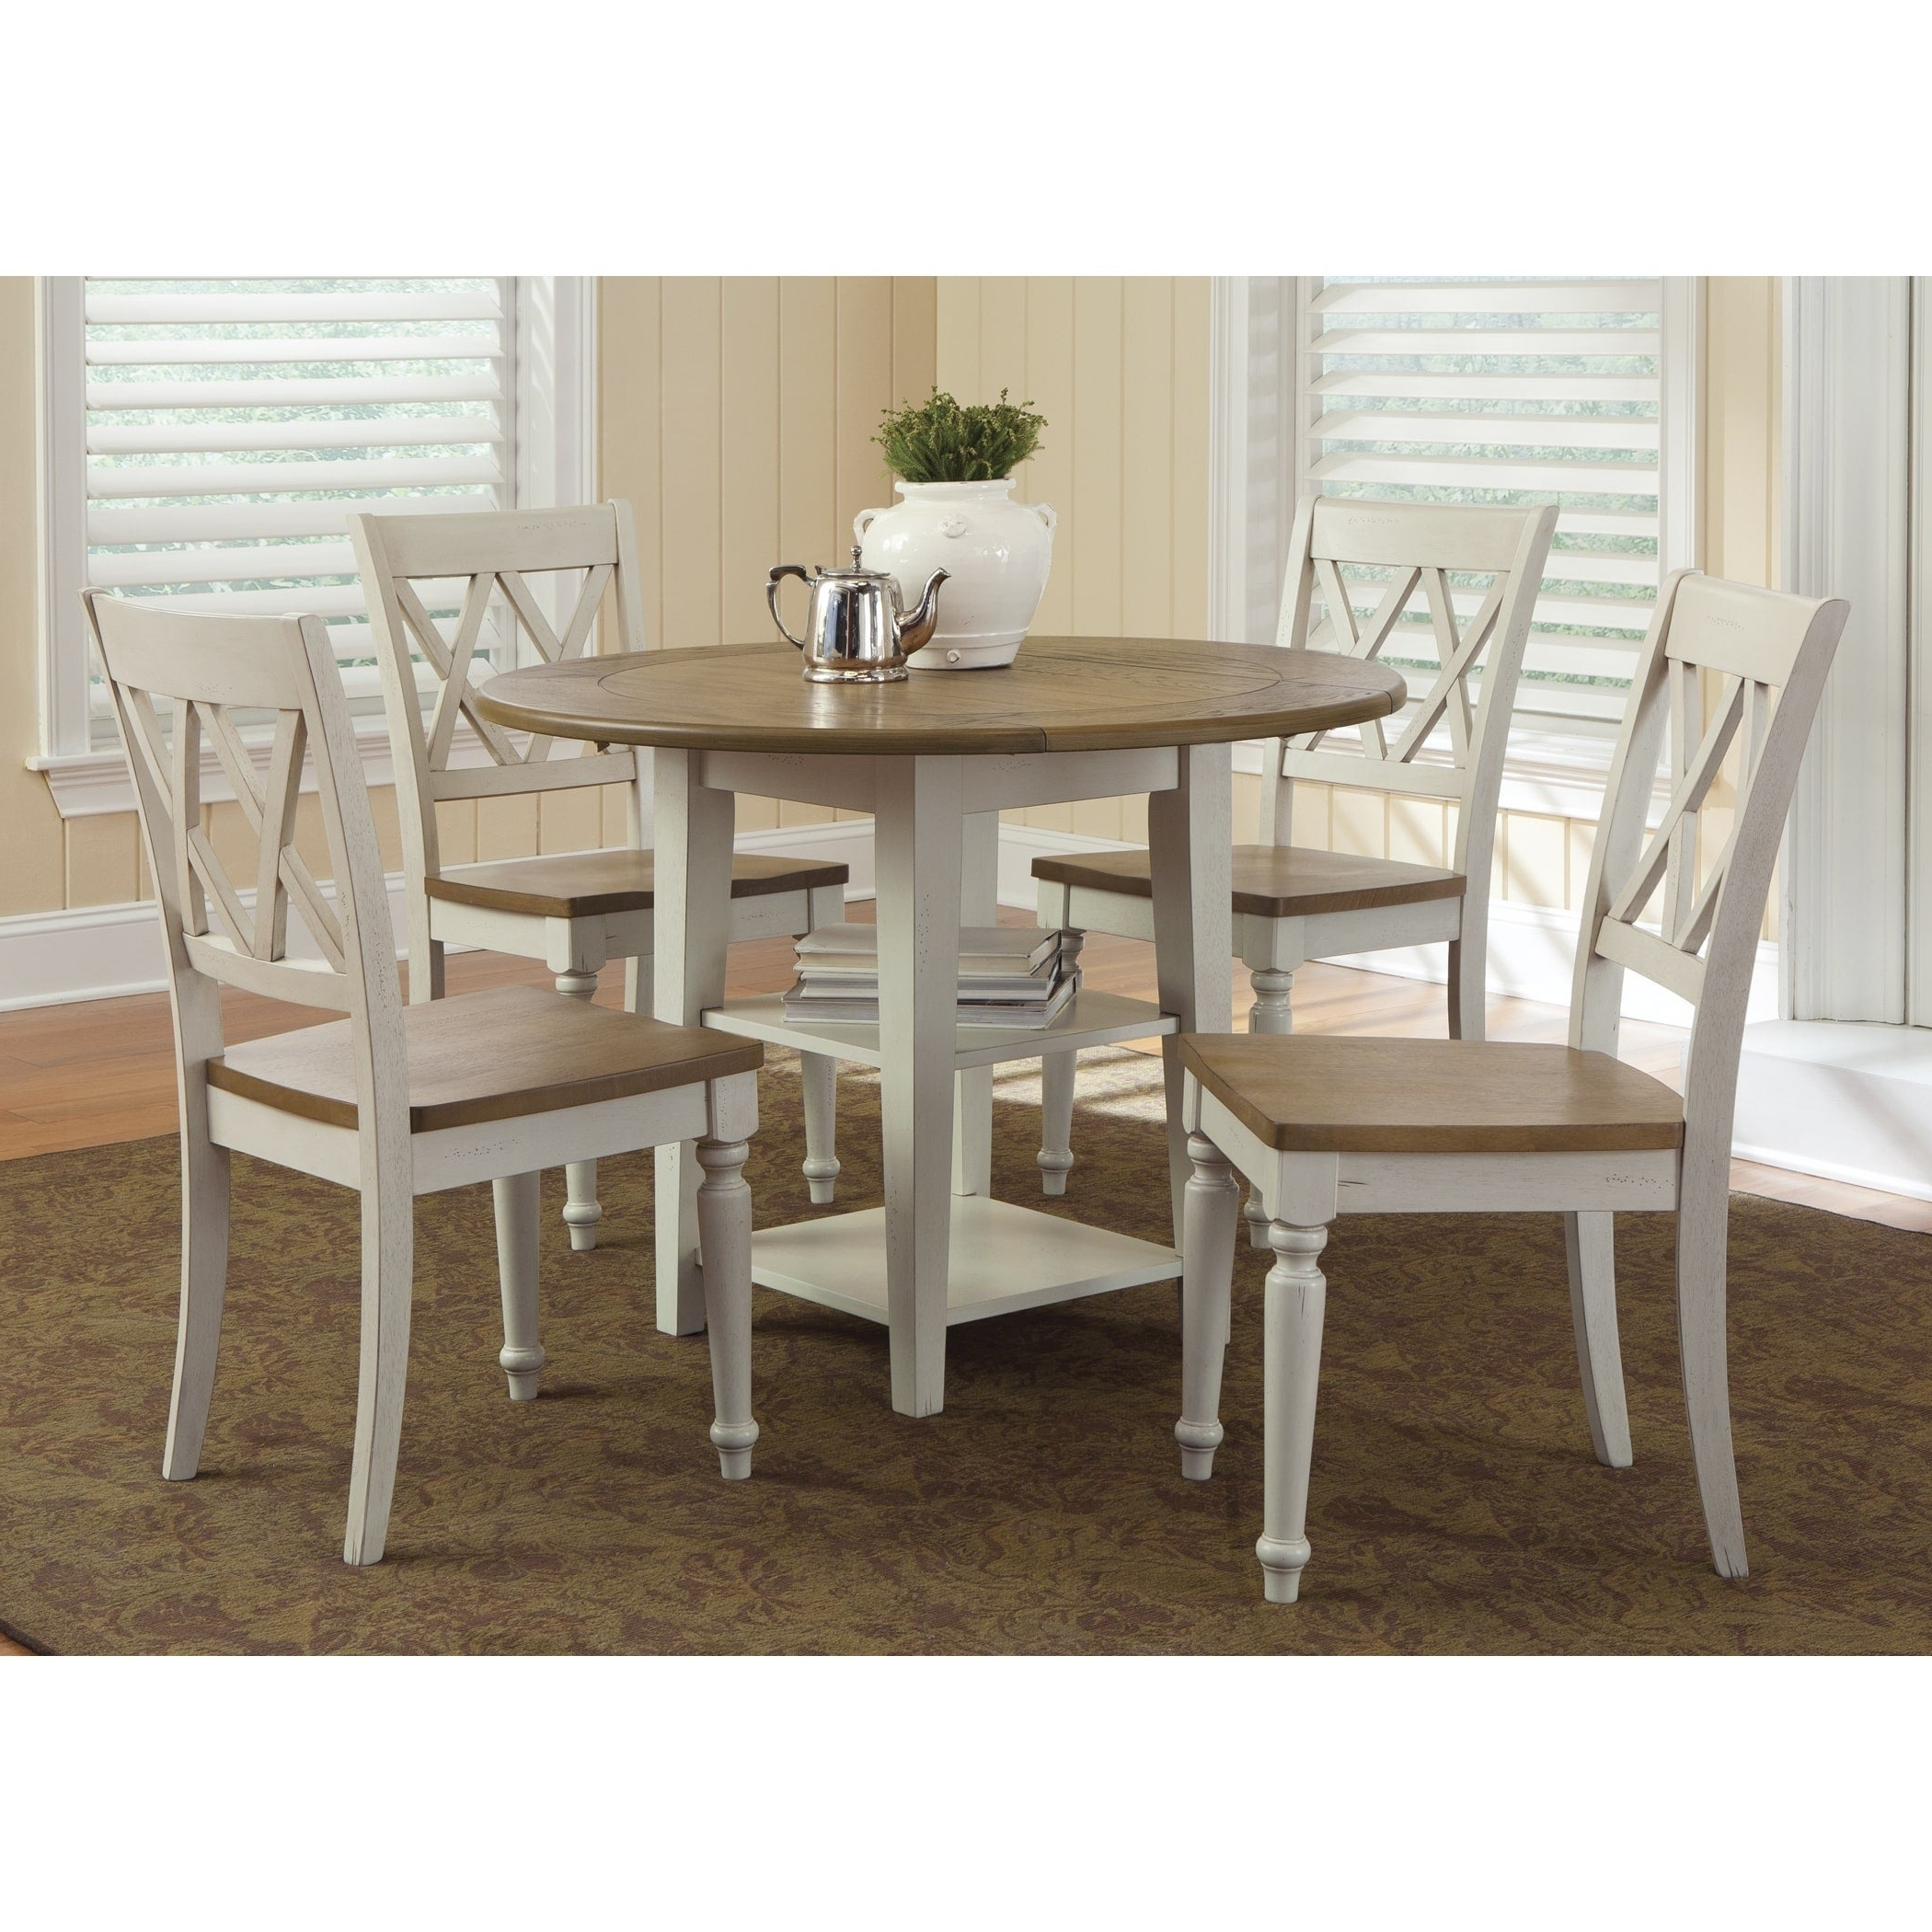 Latest Transitional 4 Seating Drop Leaf Casual Dining Tables Inside Al Fresco Two Tone Transitional Drop Leaf Leg Table – Antique White (View 19 of 30)